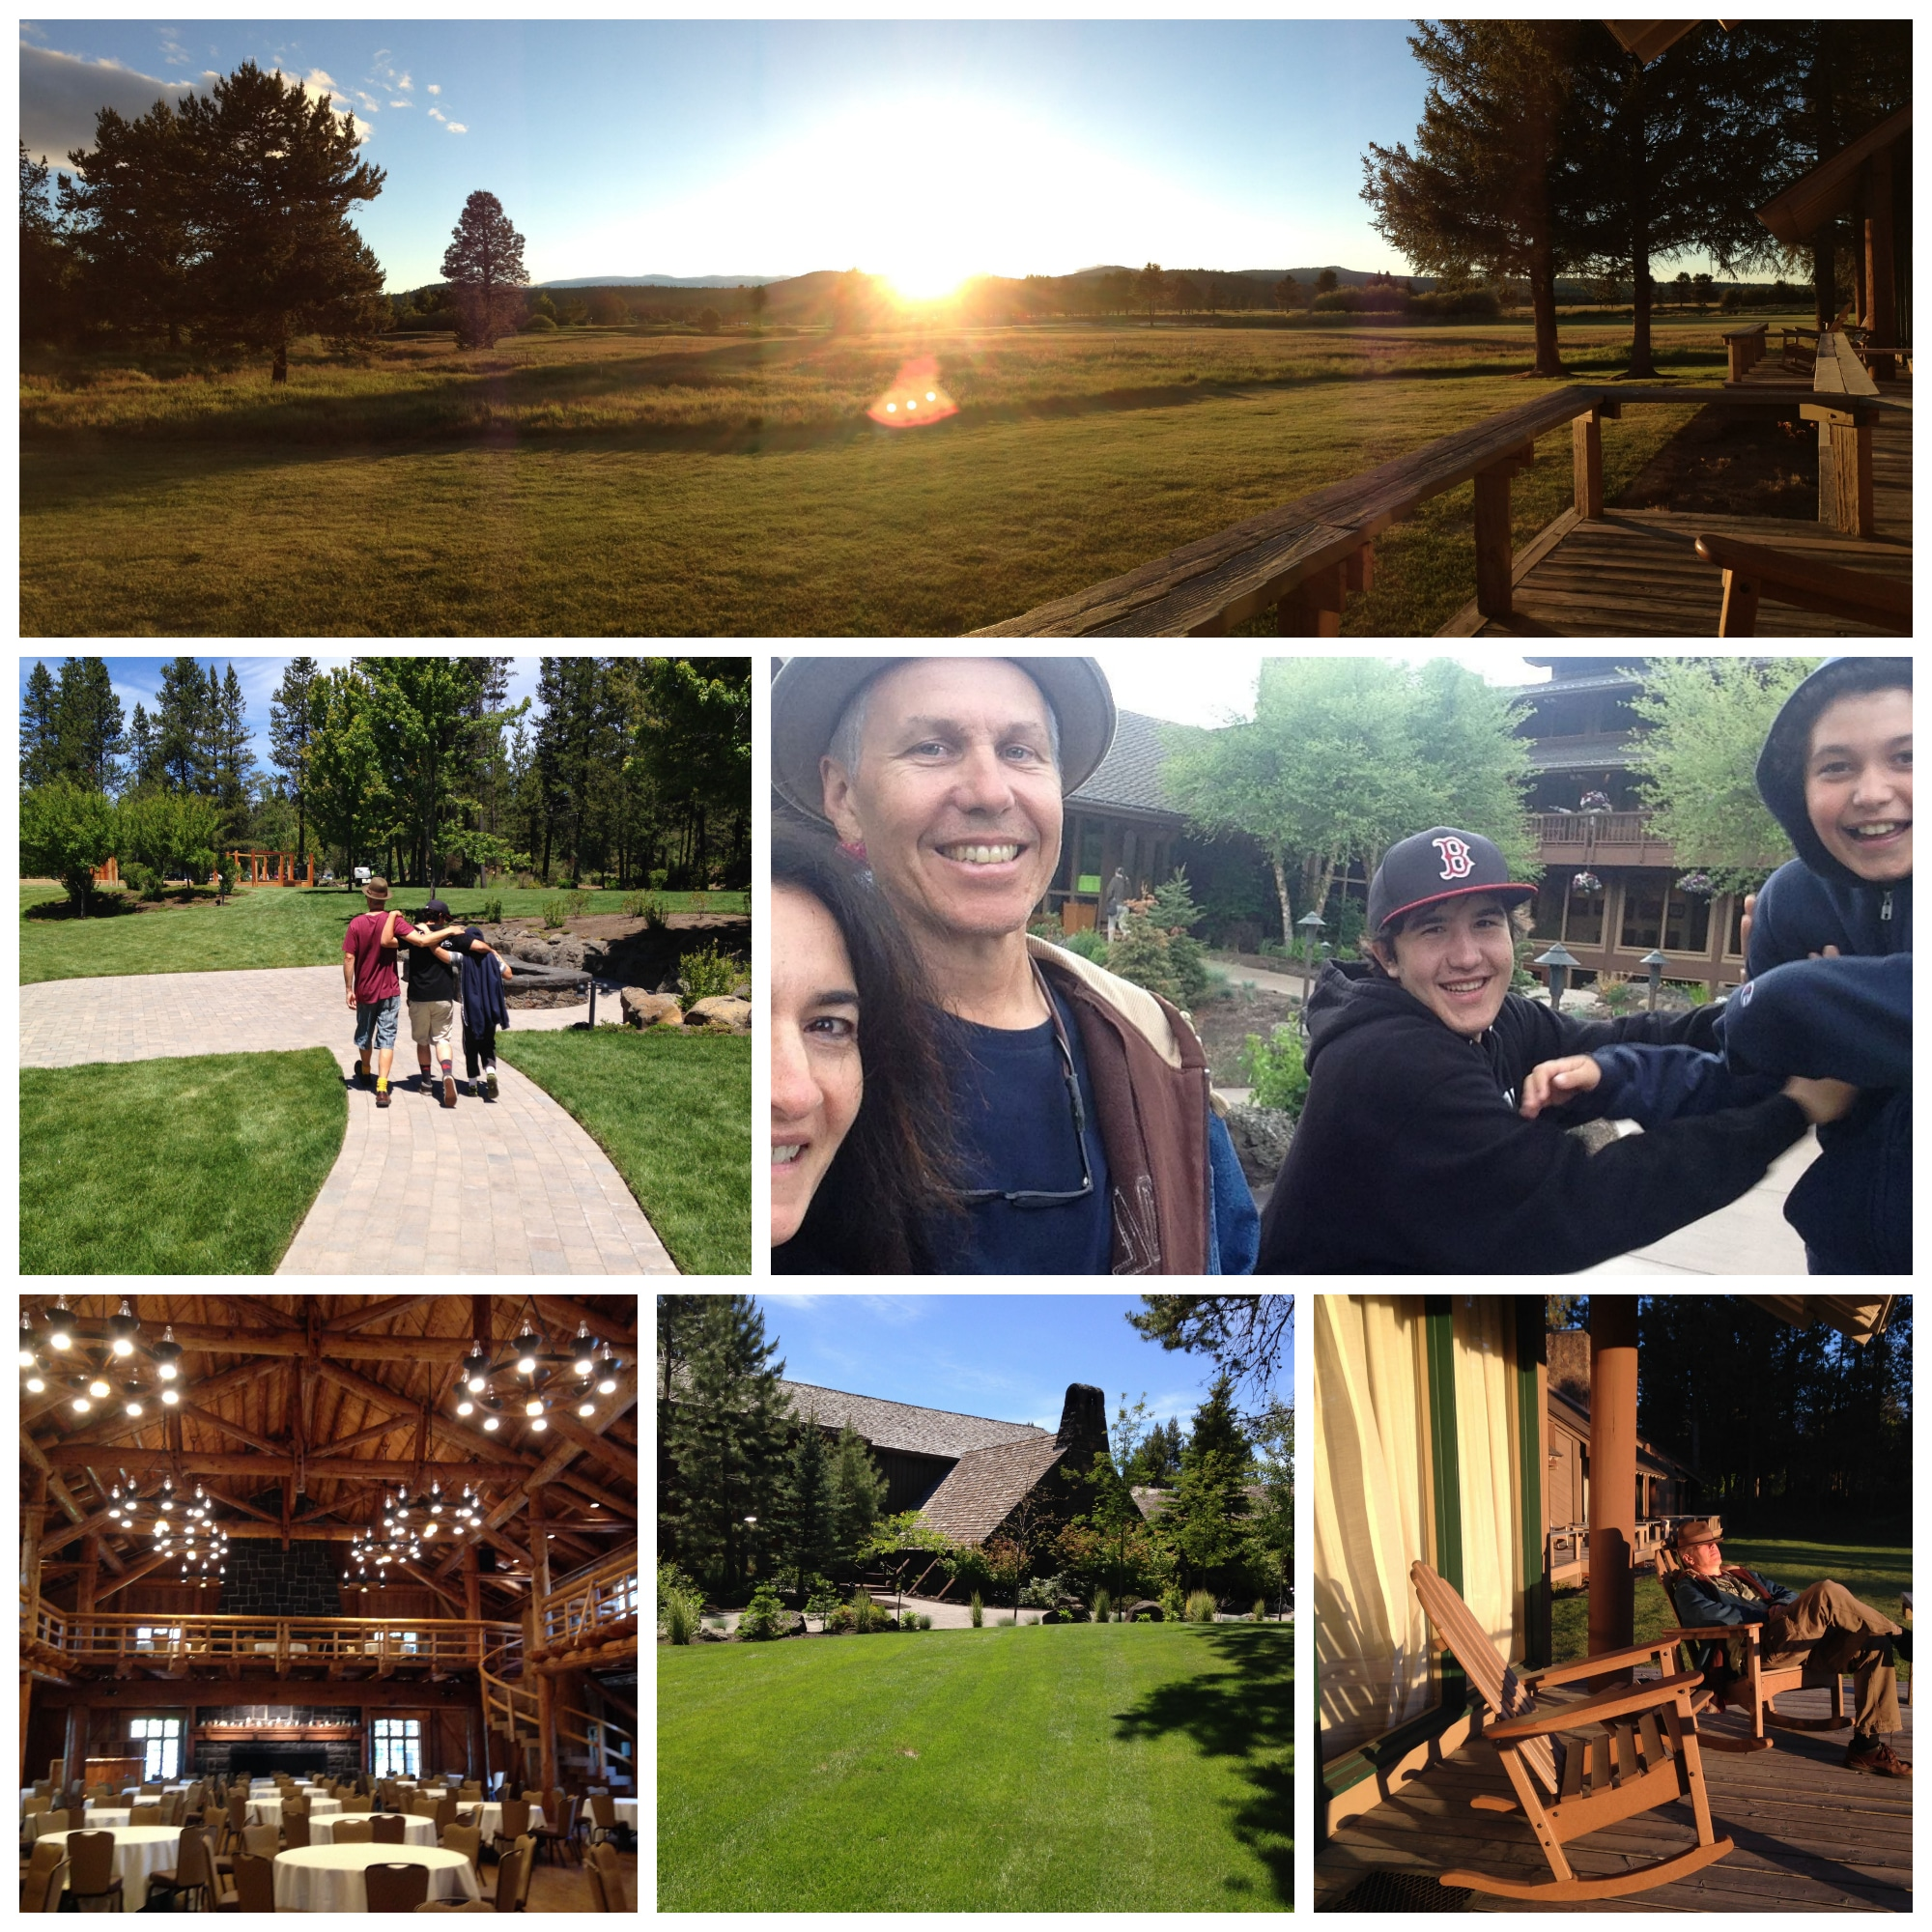 Family bonding at the Sunriver Lodge